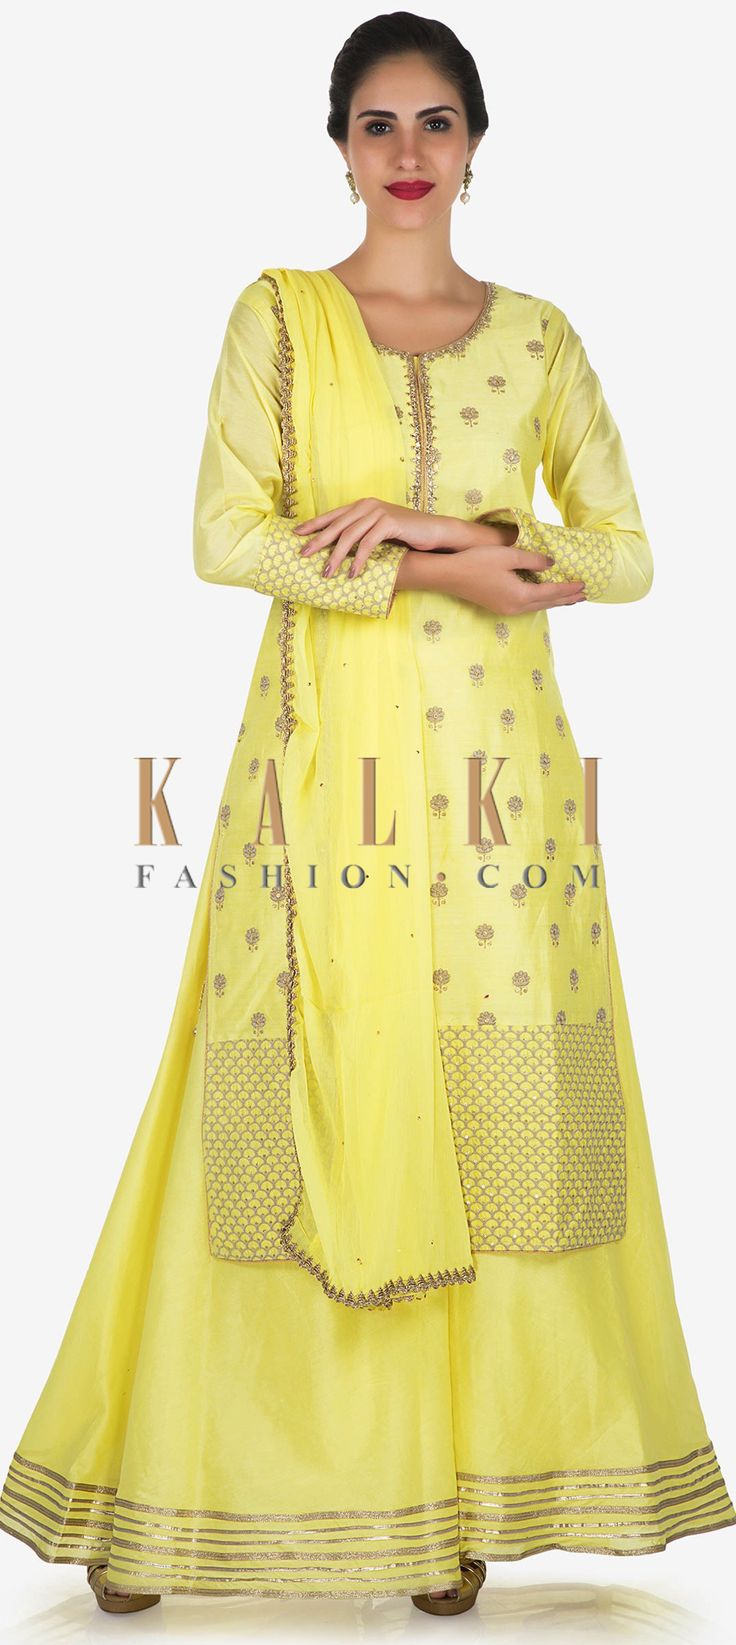 Buy Online from the link below. We ship worldwide Click Anywhere to Tag Light Yellow straight palazzo suit adorn in kundan neck and resham butti only on Kalki  Light yellow straight palazzo suit featuring in cotton. Neckline is highlighted in kundan embroidery along with resham embroidered butti all over. Matched with palazzo pant in silk with border in antique lace. The set is complete with chiffon dupatta in gold lace. Slight variation in color is possible